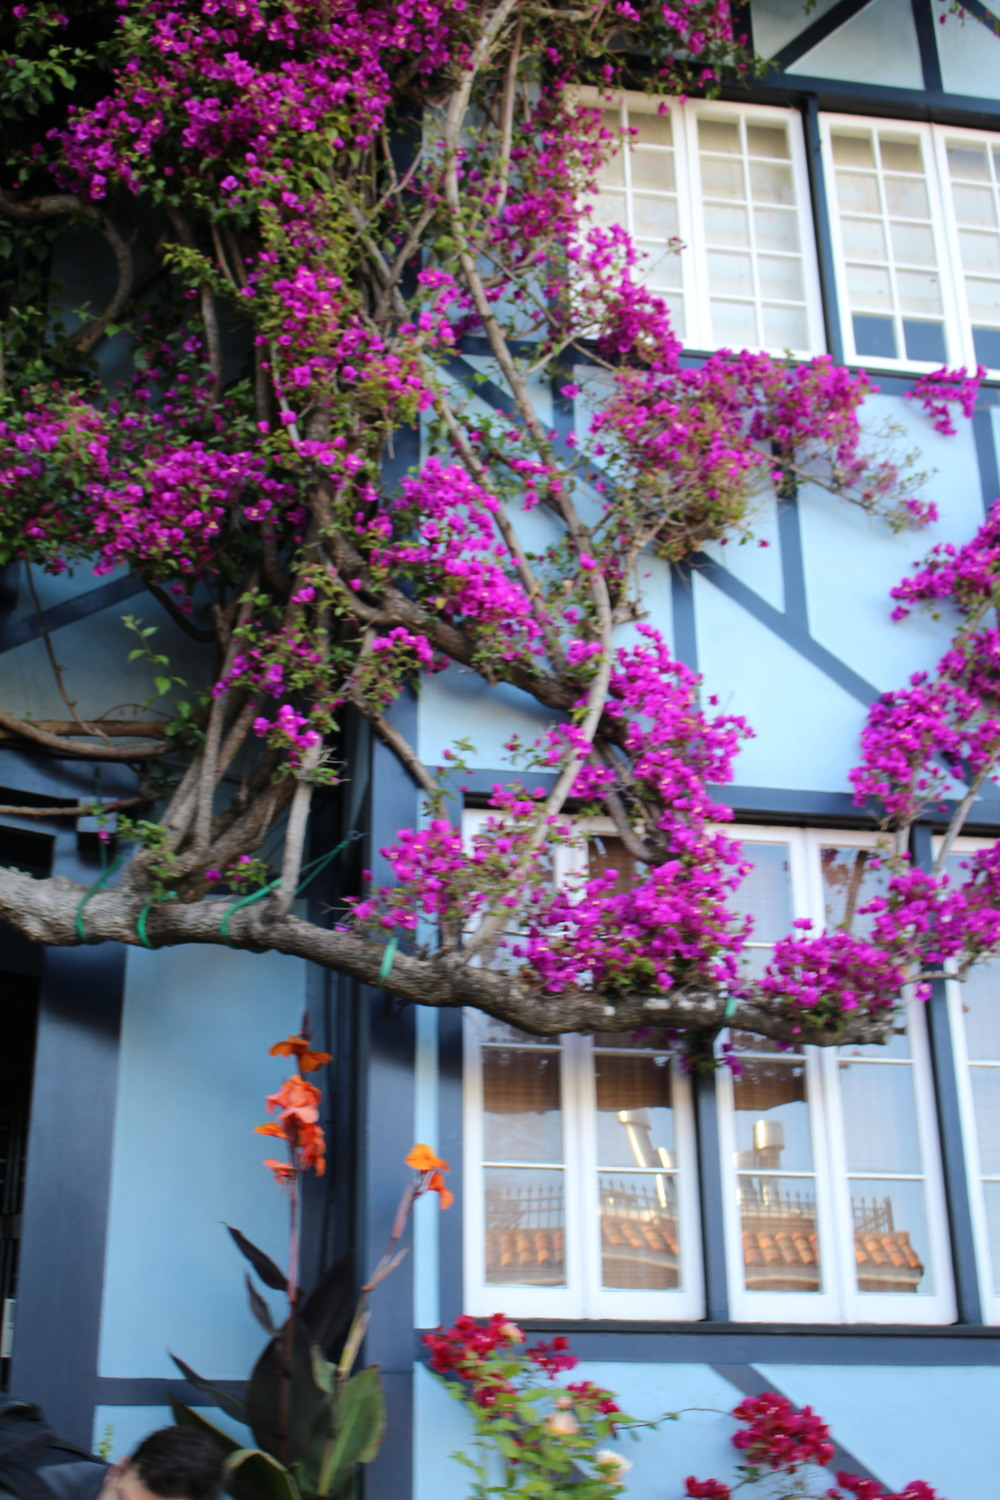 One of the houses at Lombard street. Pretty flowers!